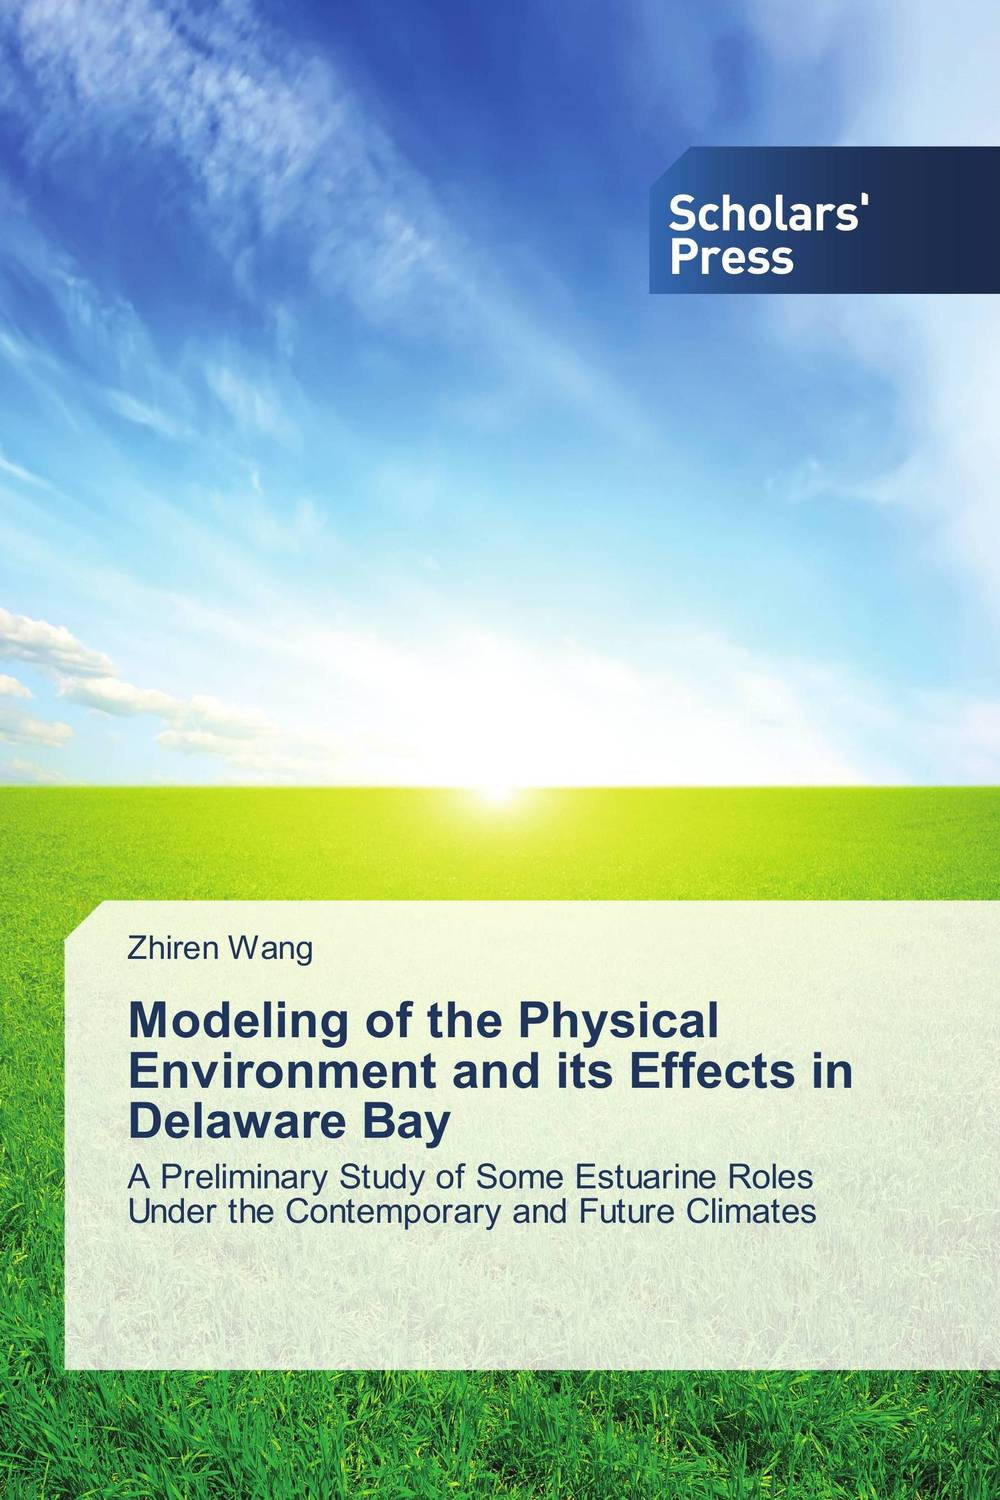 Modeling of the Physical Environment and its Effects in Delaware Bay